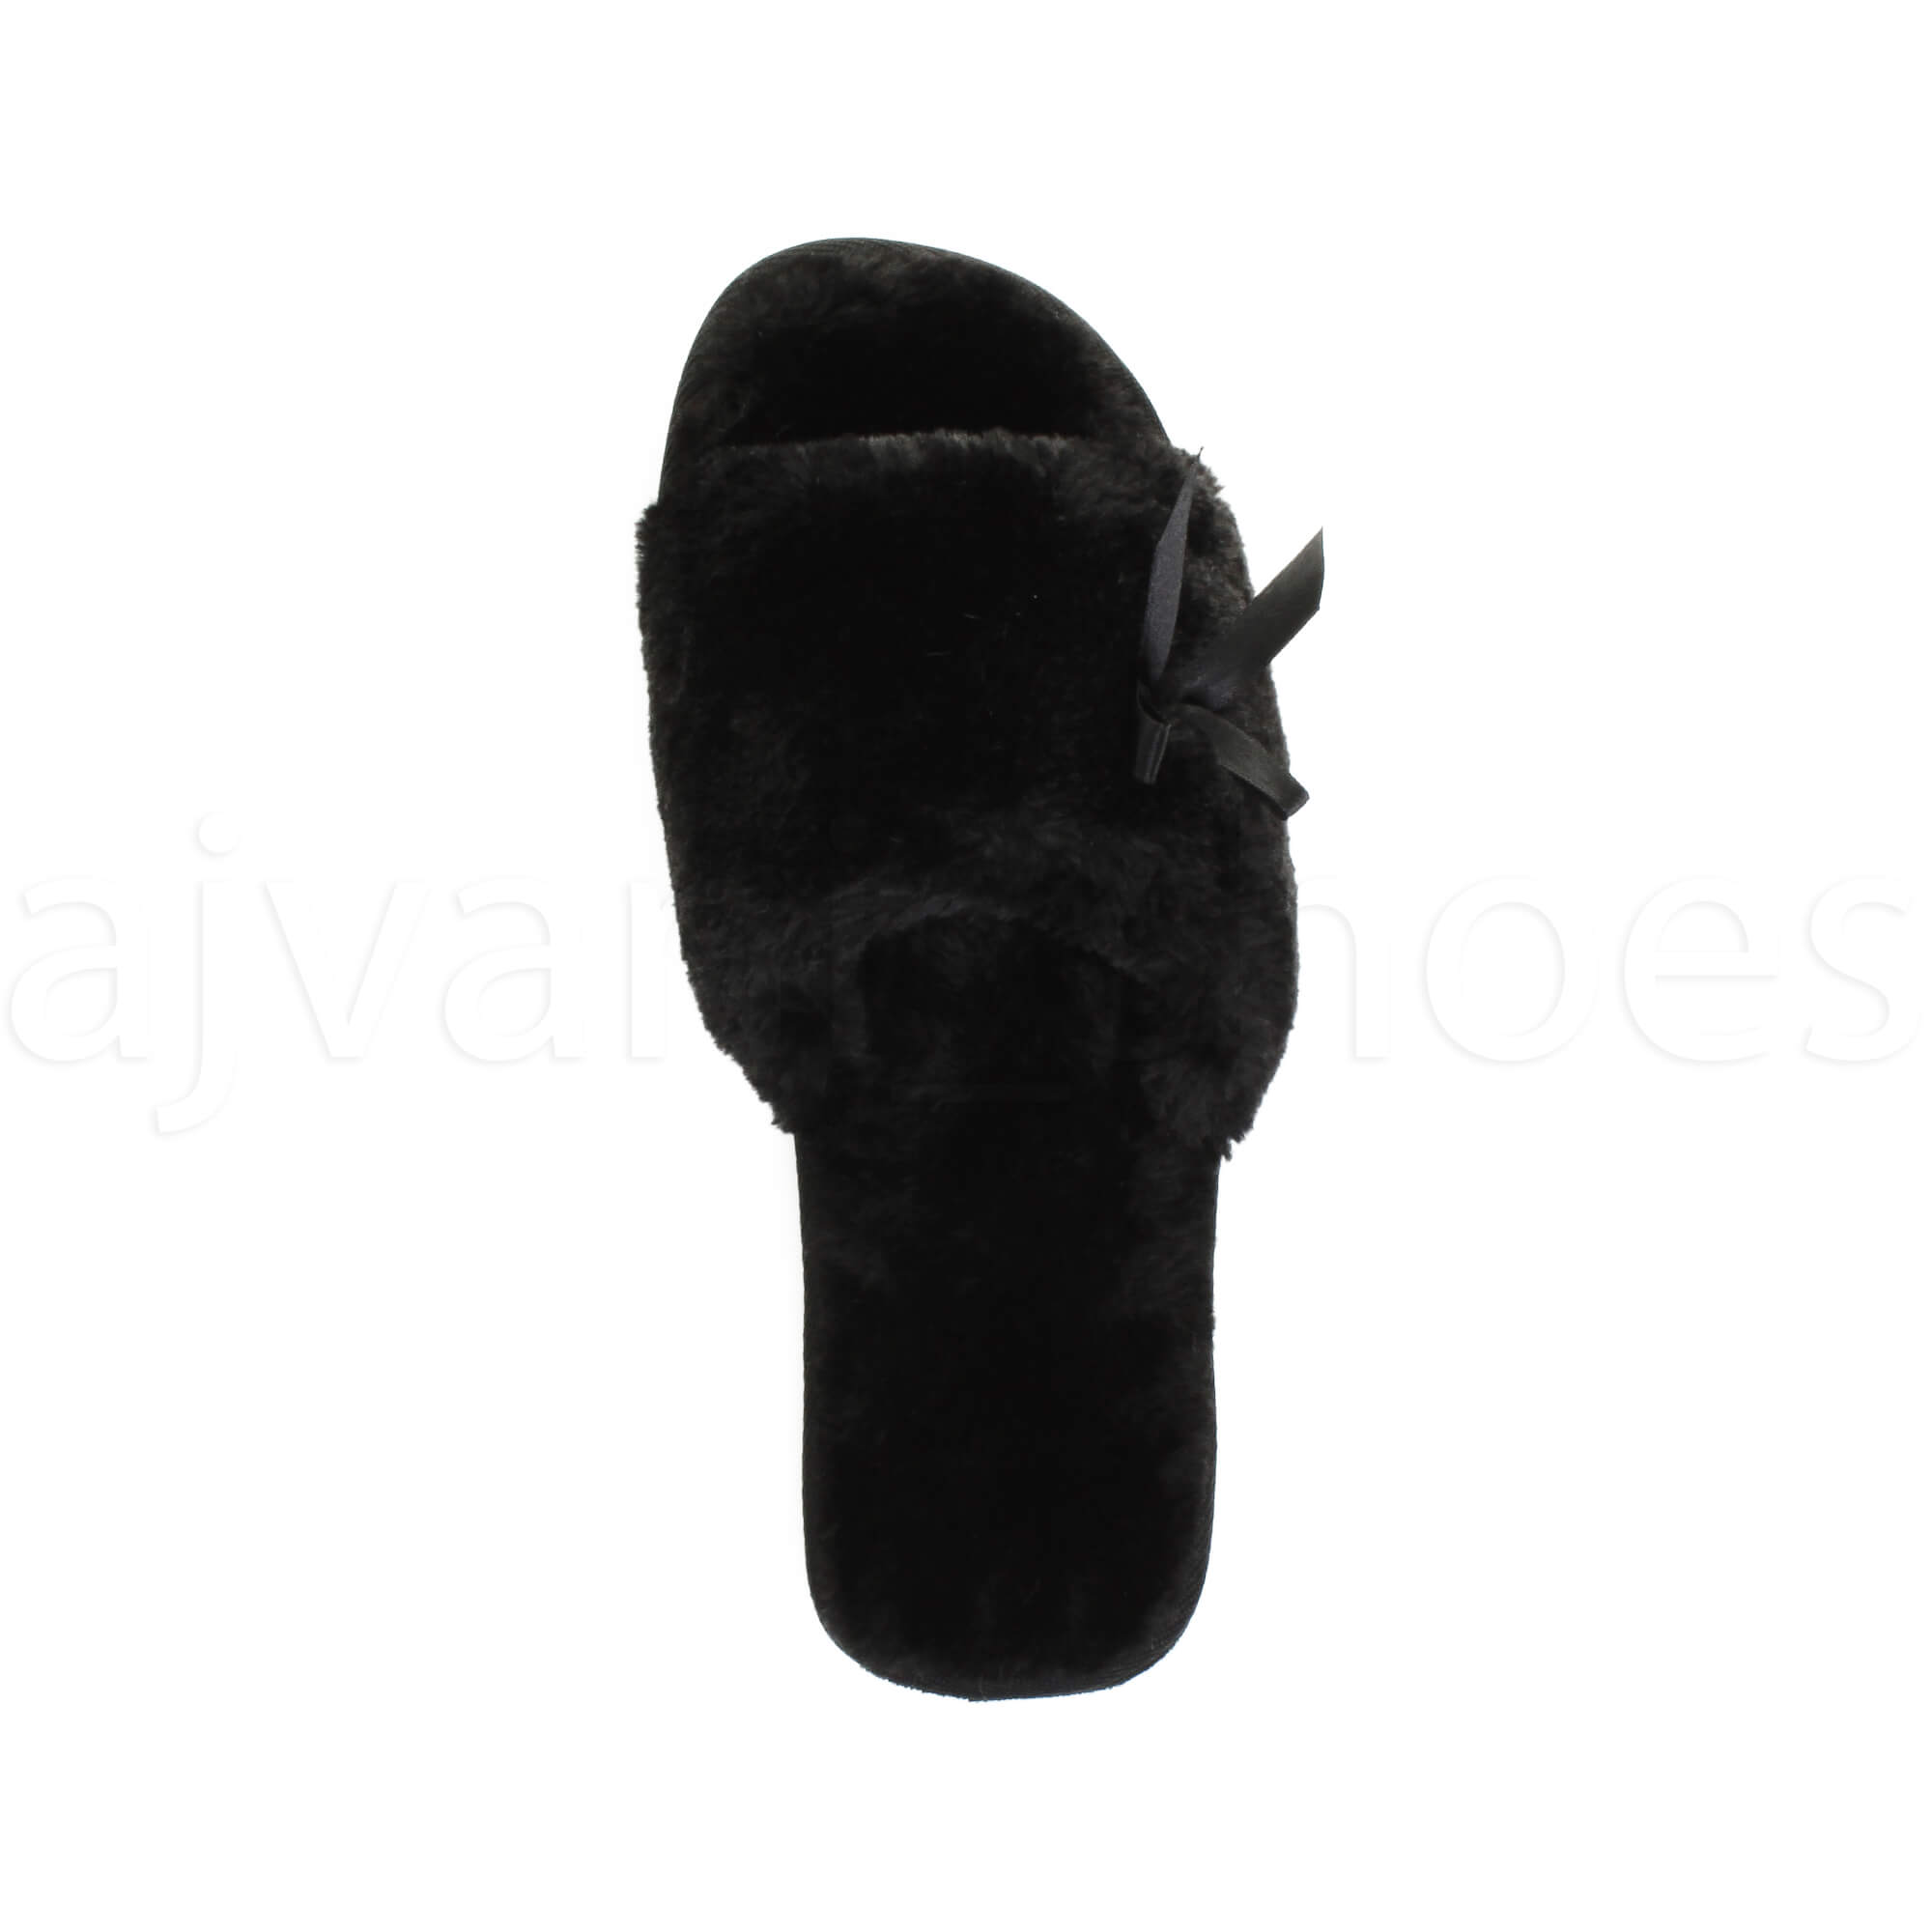 WOMENS-LADIES-FLAT-PEEP-TOE-BOW-LUXURY-COSY-FUR-LINED-SLIP-ON-SLIPPERS-SIZE thumbnail 14